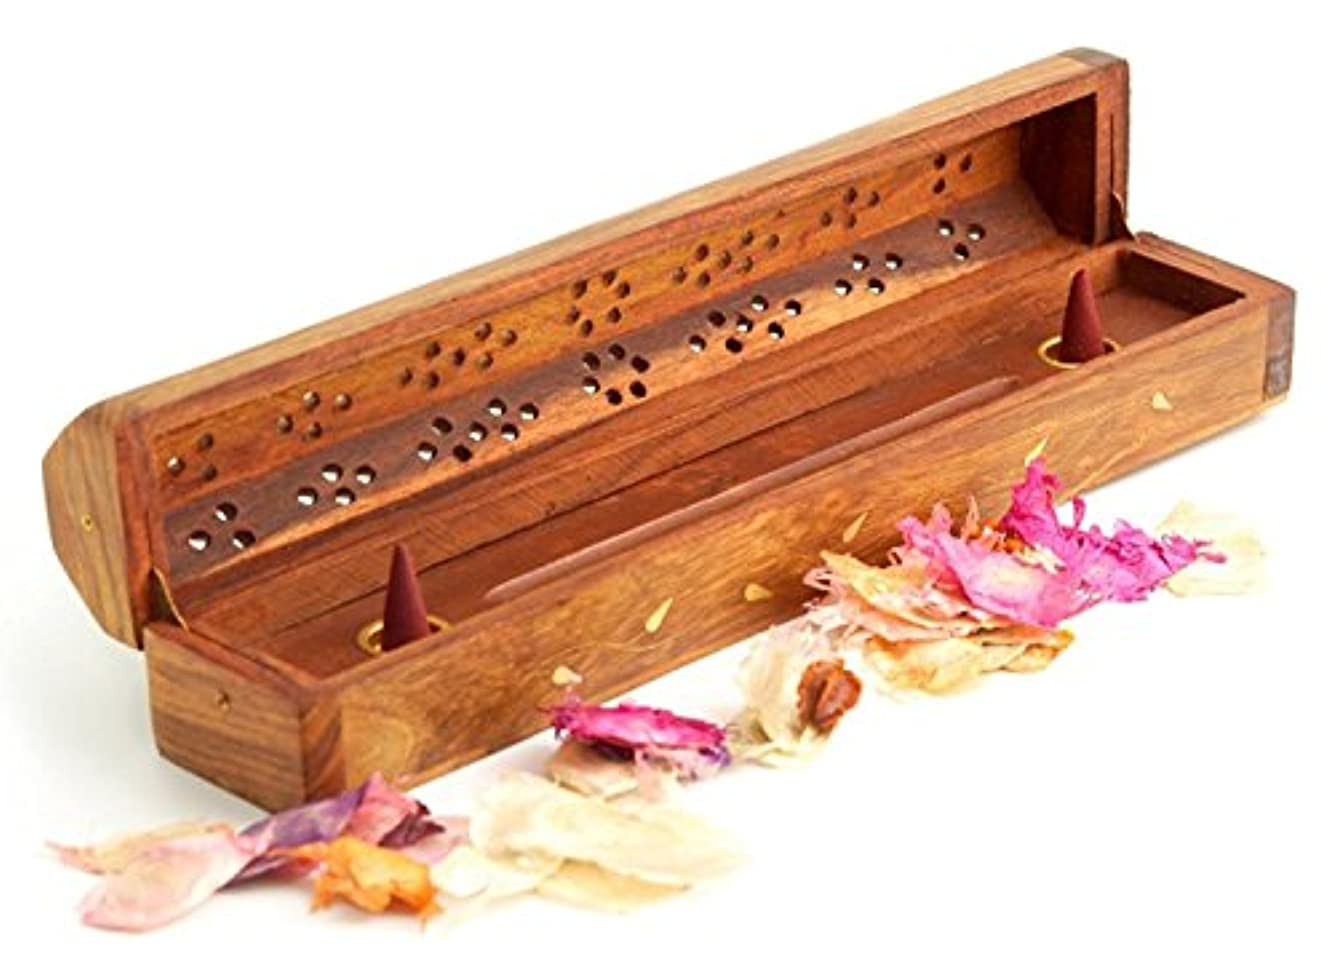 Wooden Coffin Incense Burner - Vines 12 - Brass Inlays - Storage Compartment by Accessories - Coffin Burners